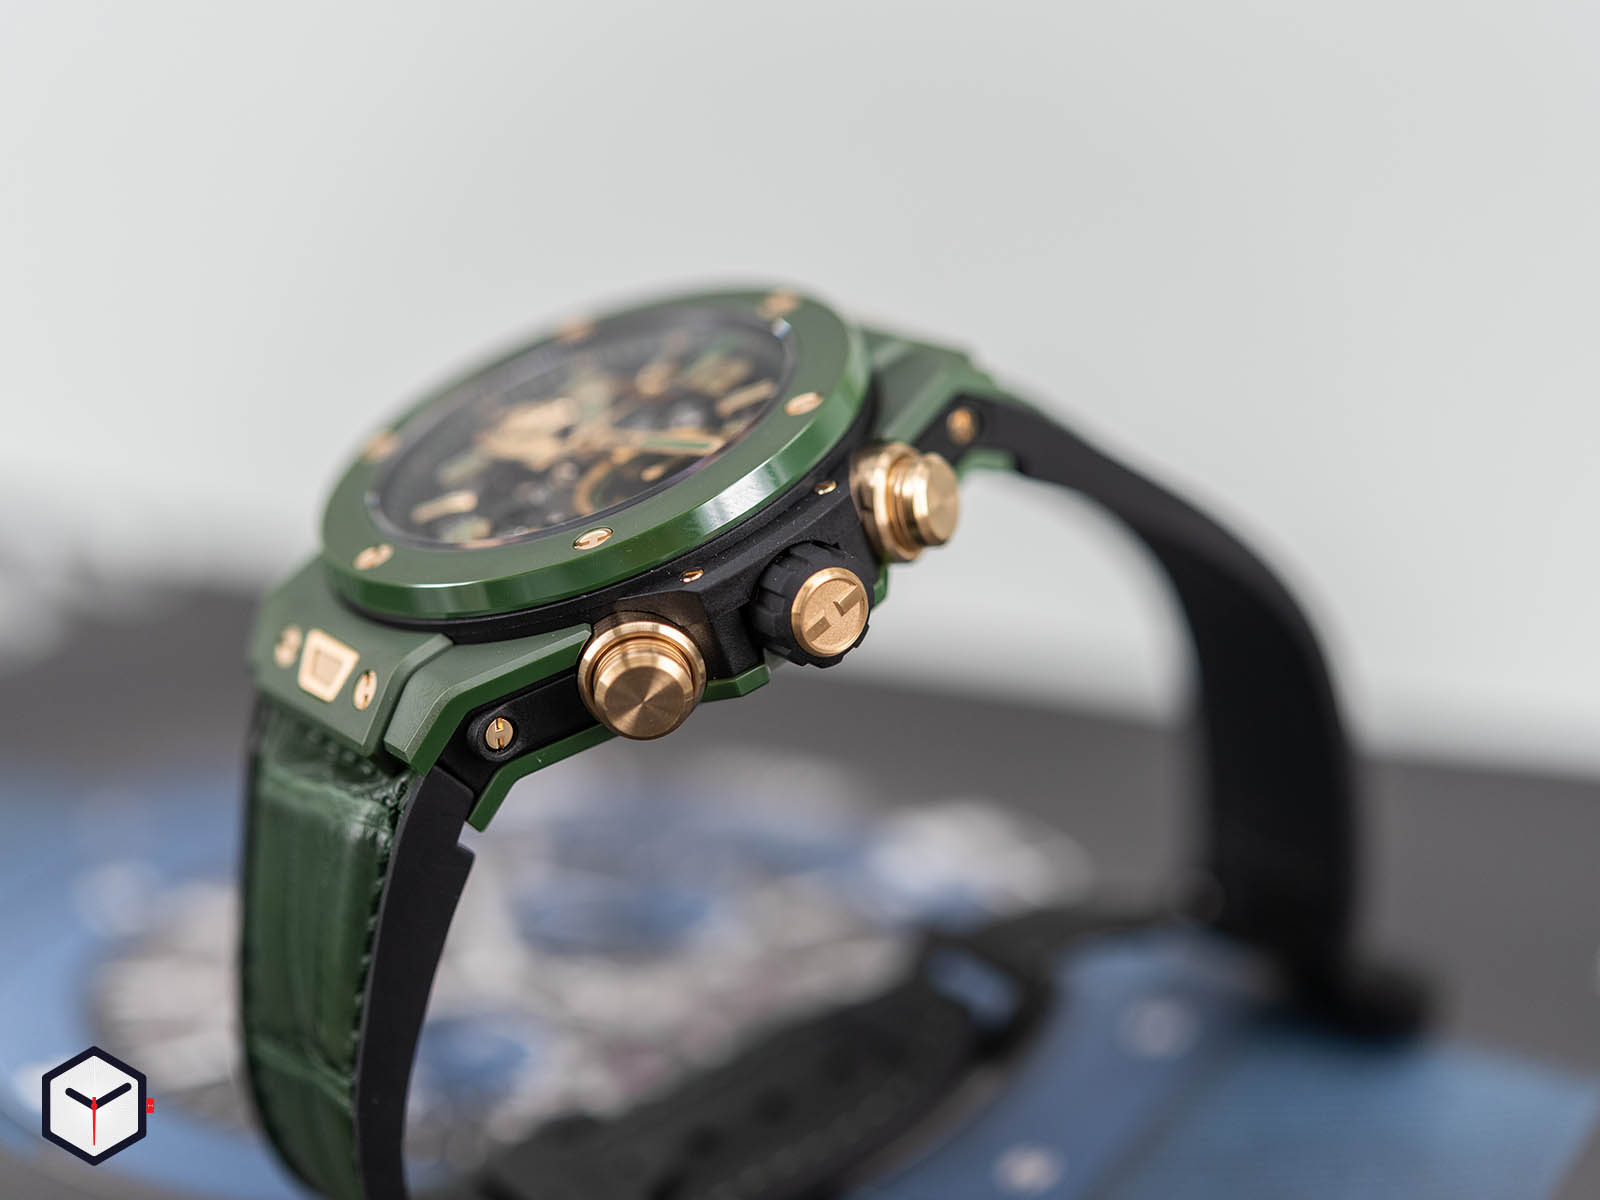 411-gx-1189-lr-wbc19-hublot-big-bang-unico-wbc-4.jpg